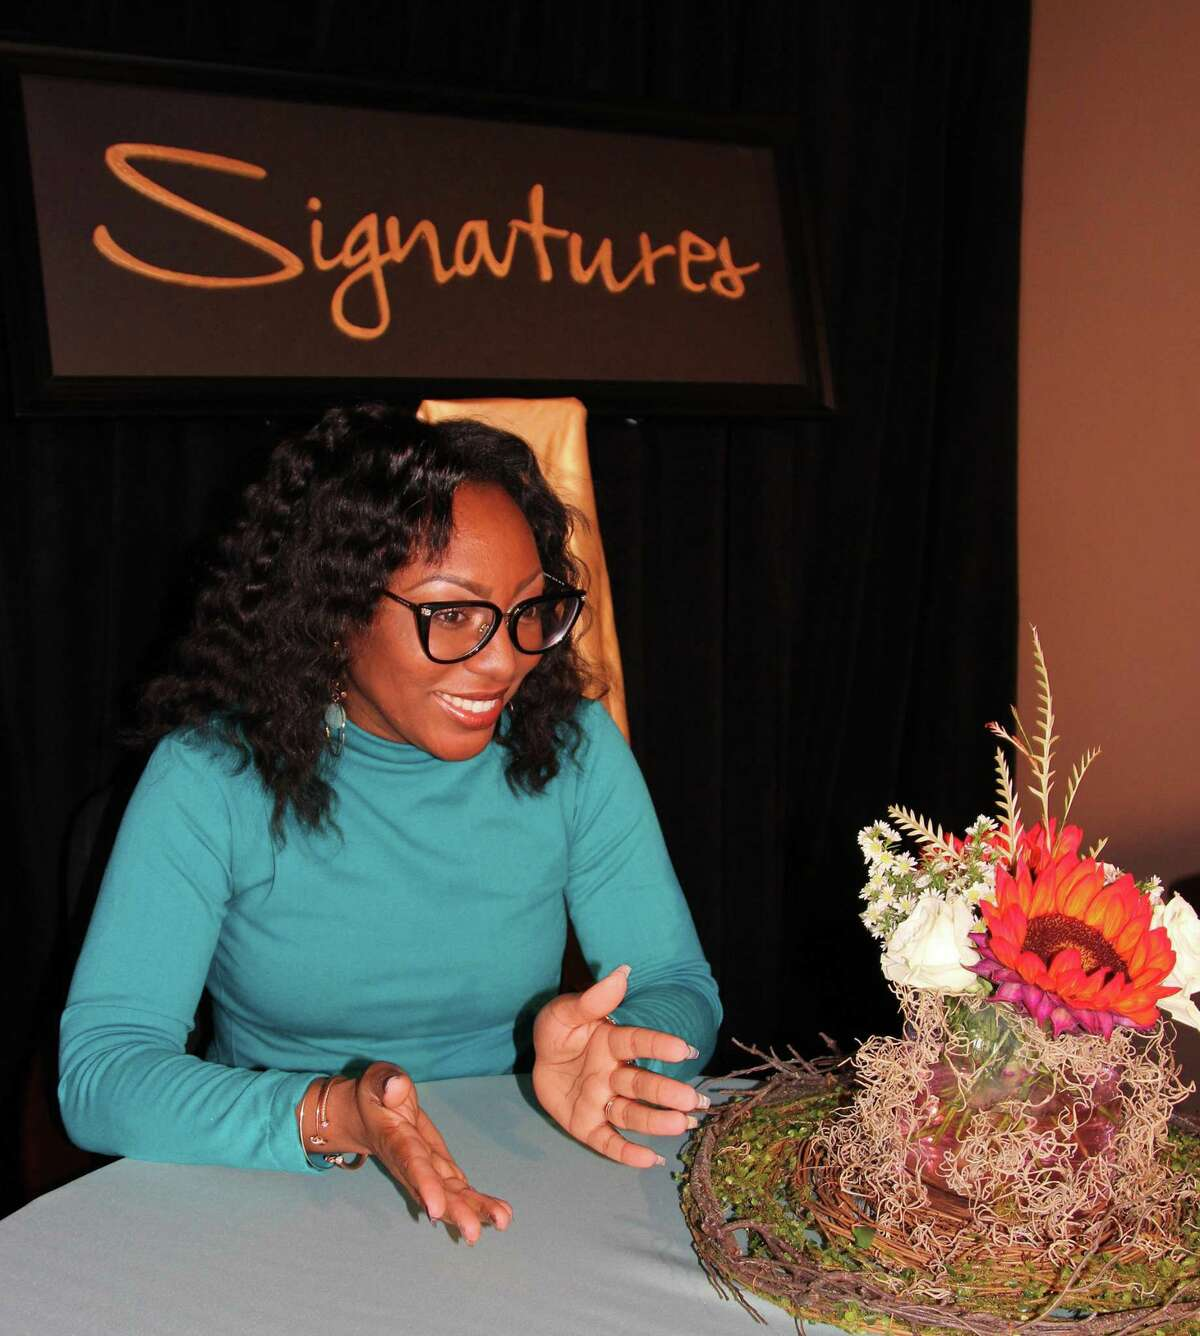 Ashley Bryson, Upper School English faculty member at The John Cooper School, moderates a Q&Awith author Jesmyn Ward after the keynote address at the 16th Signatures Author Series hosted by the school.